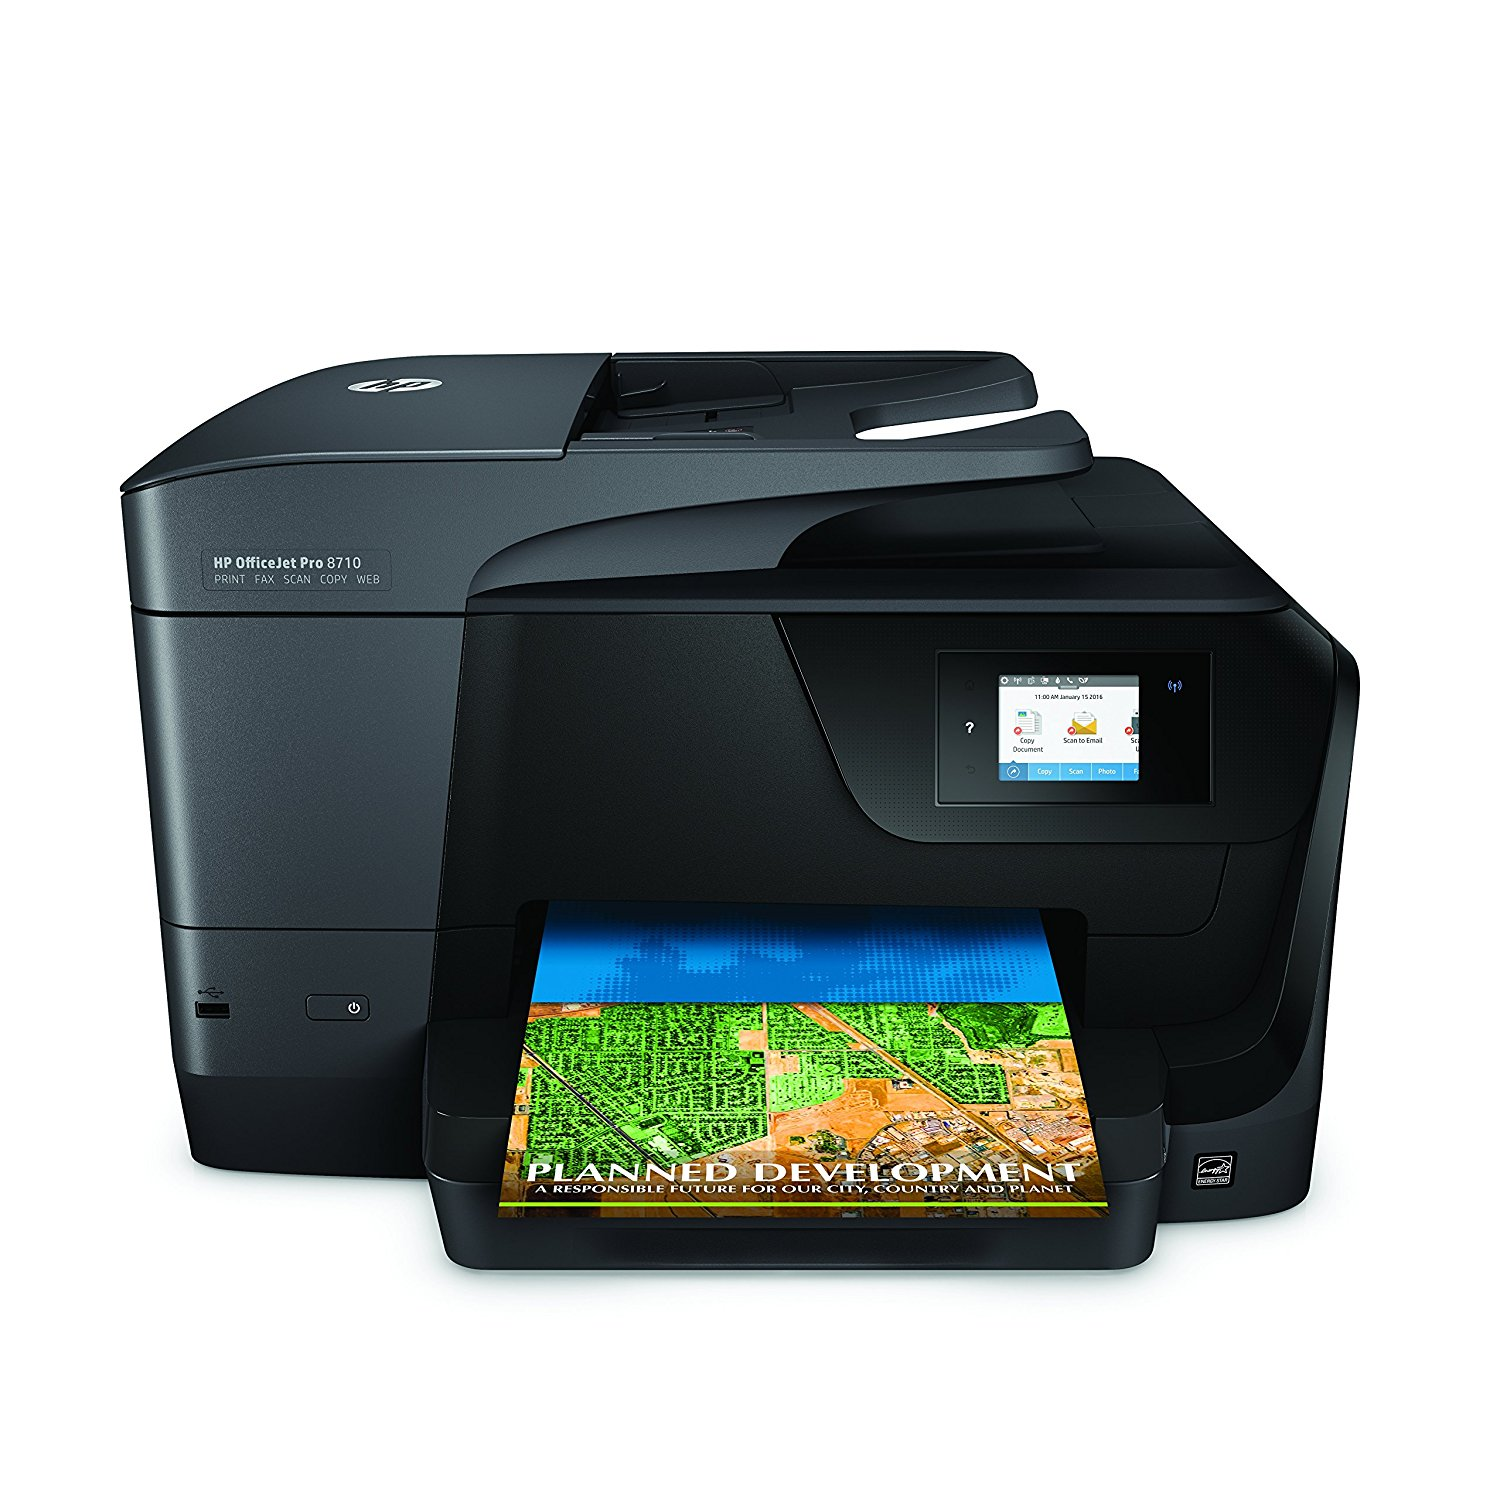 HP OfficeJet Pro 8710 Wireless All-in-One Review